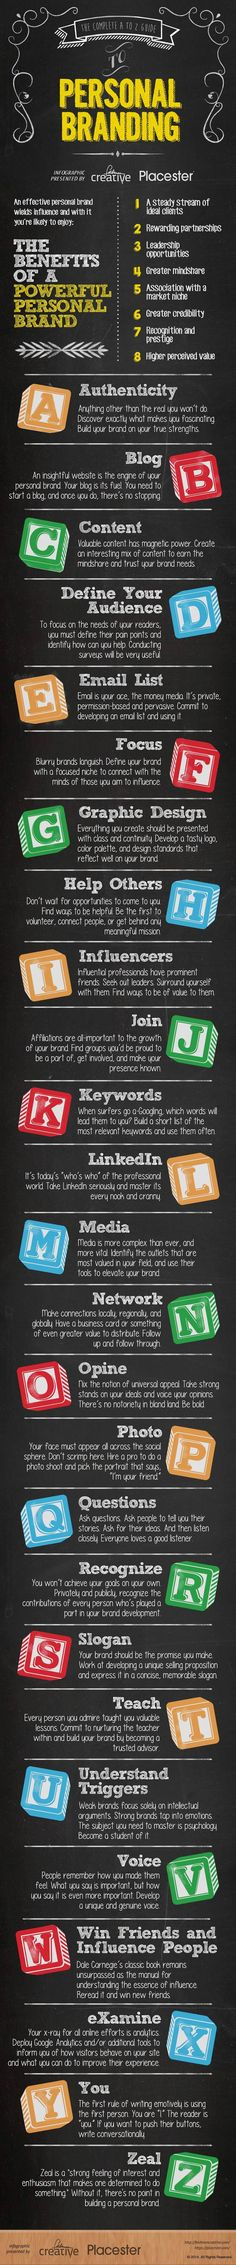 Food infographic The complete A to Z guide to personal branding. Infographic Description The complete A to Z guide to personal branding - Infographic Business Branding, Business Marketing, Content Marketing, Internet Marketing, Online Marketing, Social Media Marketing, Logo Branding, Branding Ideas, Marketing Ideas